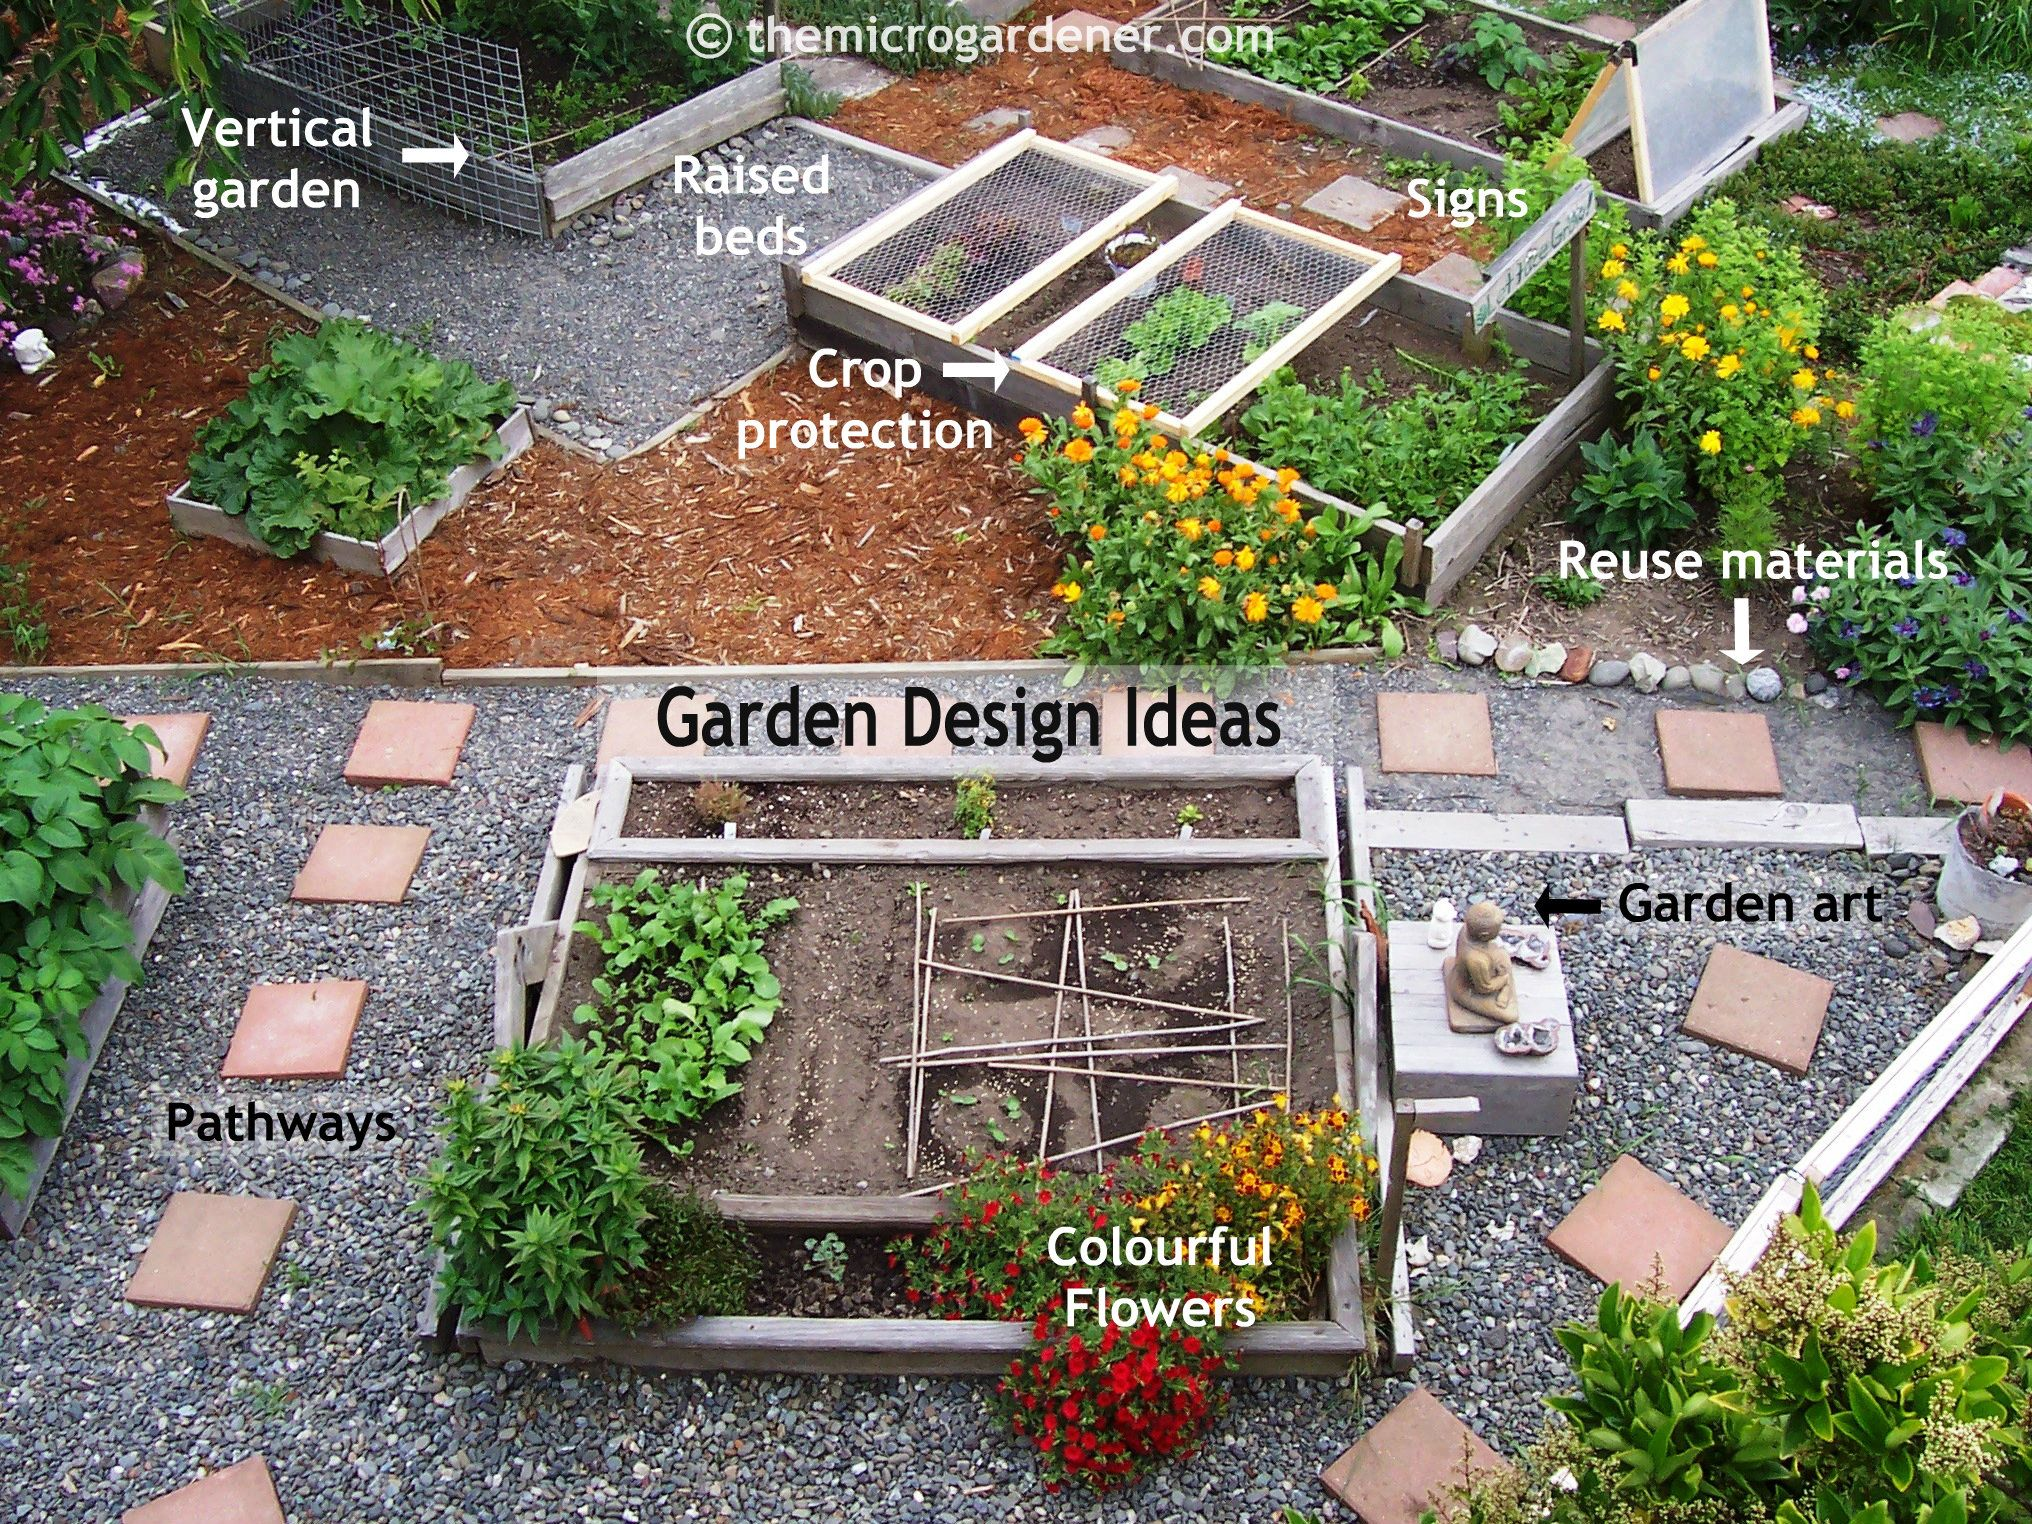 Small garden design ideas on pinterest vertical gardens for Garden design plans ideas